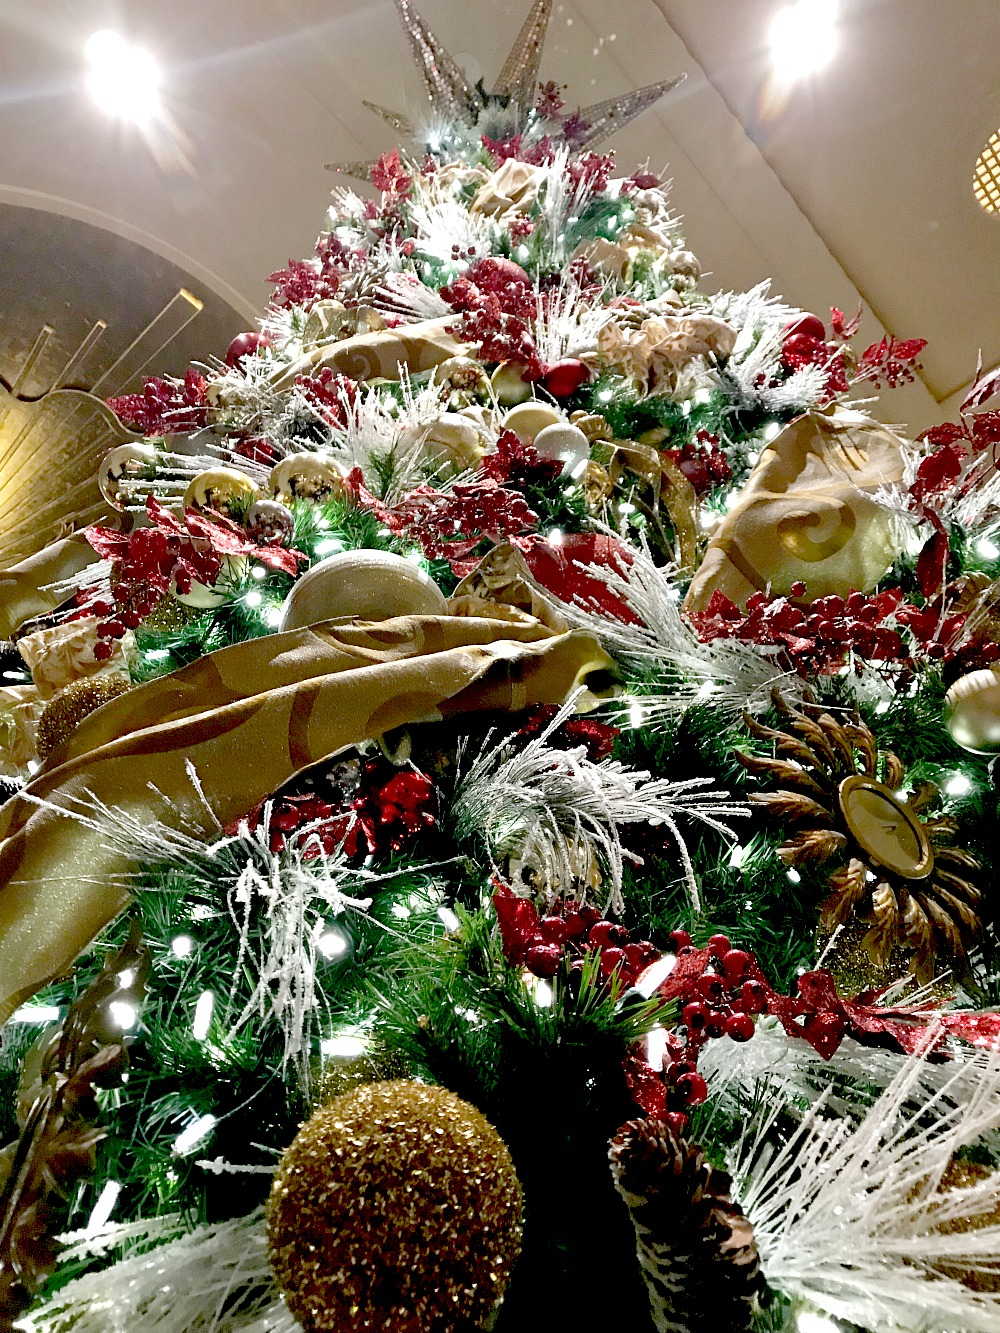 The Christmas tree at The Peninsula Hotel